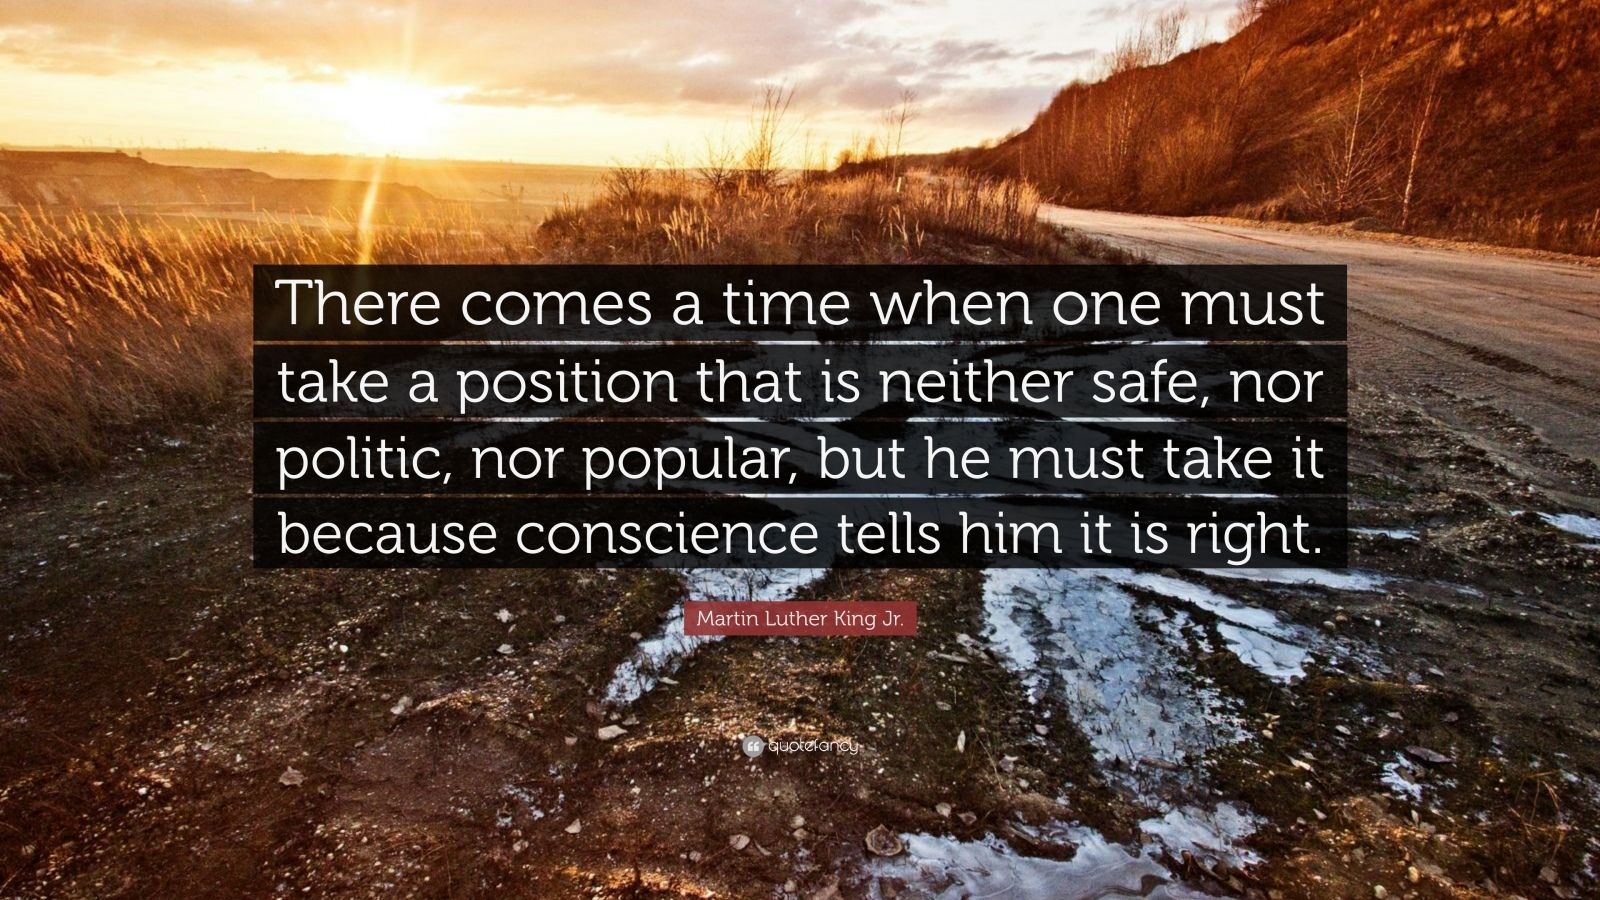 """Martin Luther King Jr. Quote: """"There comes a time when one must take a position that is neither safe, nor politic, nor popular, but he must take it because conscience tells him it is right."""""""